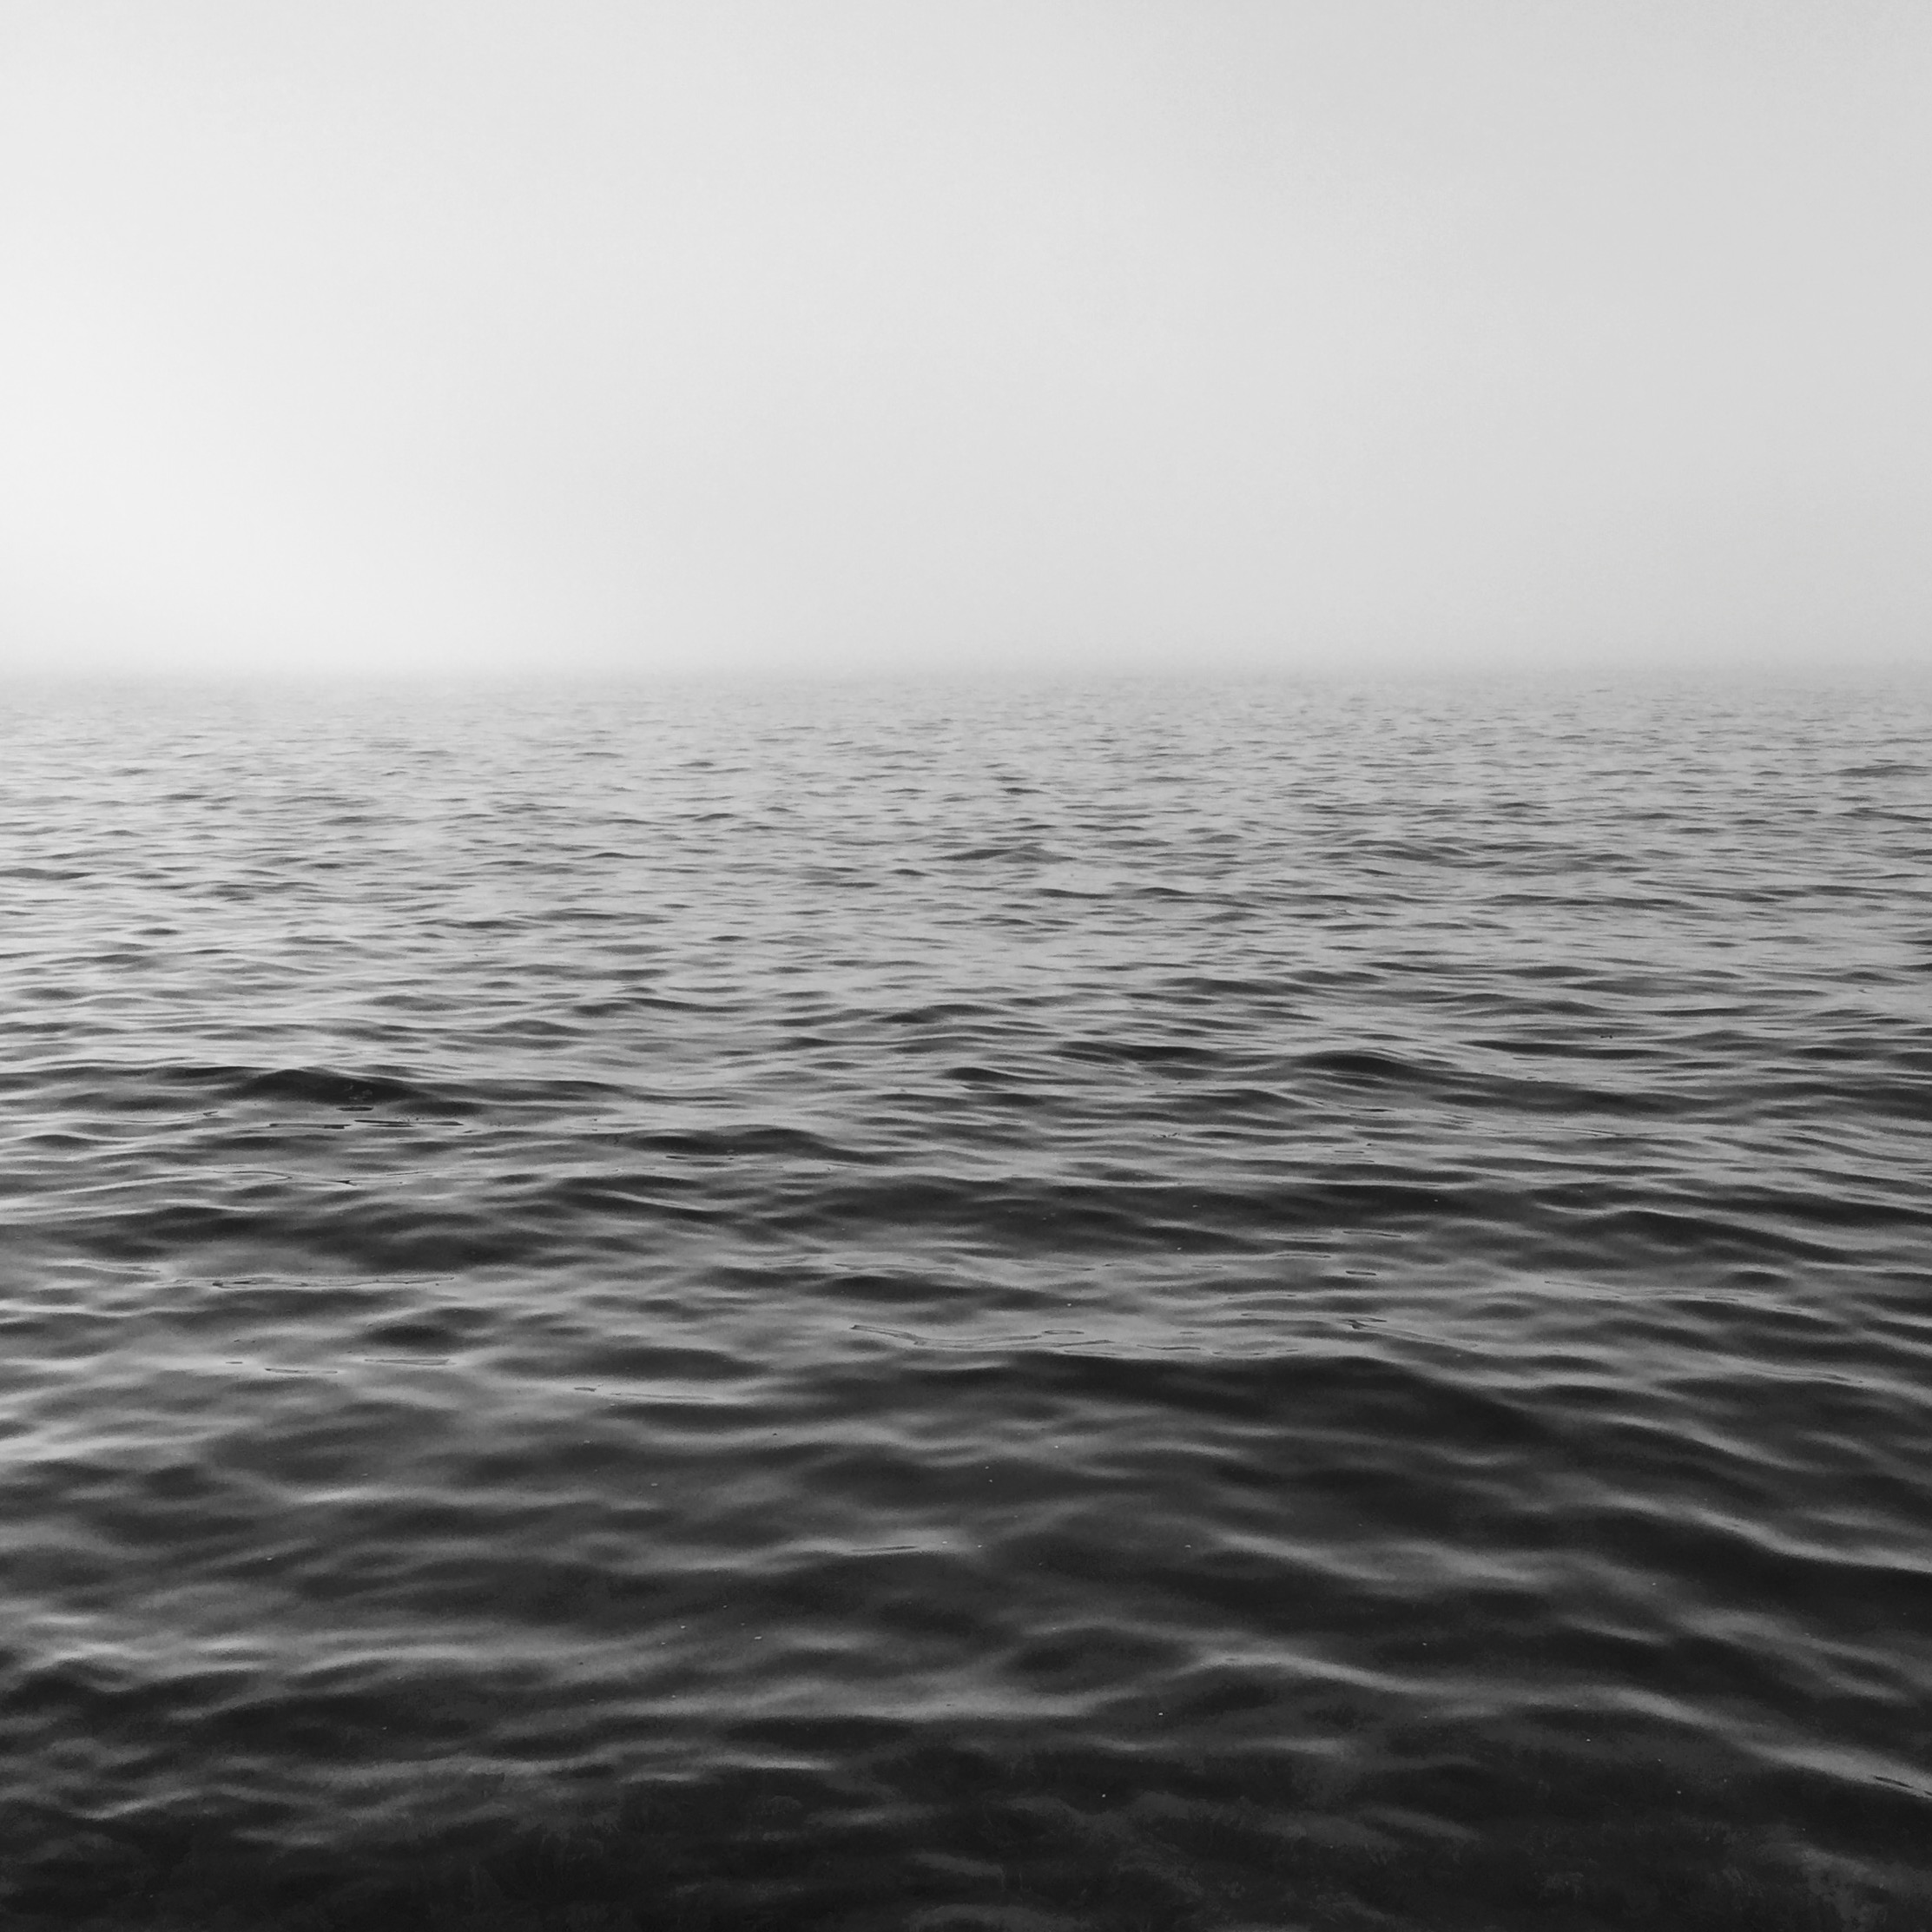 Melanie-Davis-Bracey-The-Atlantic-Maine-Black-and-White-Water-Photo-